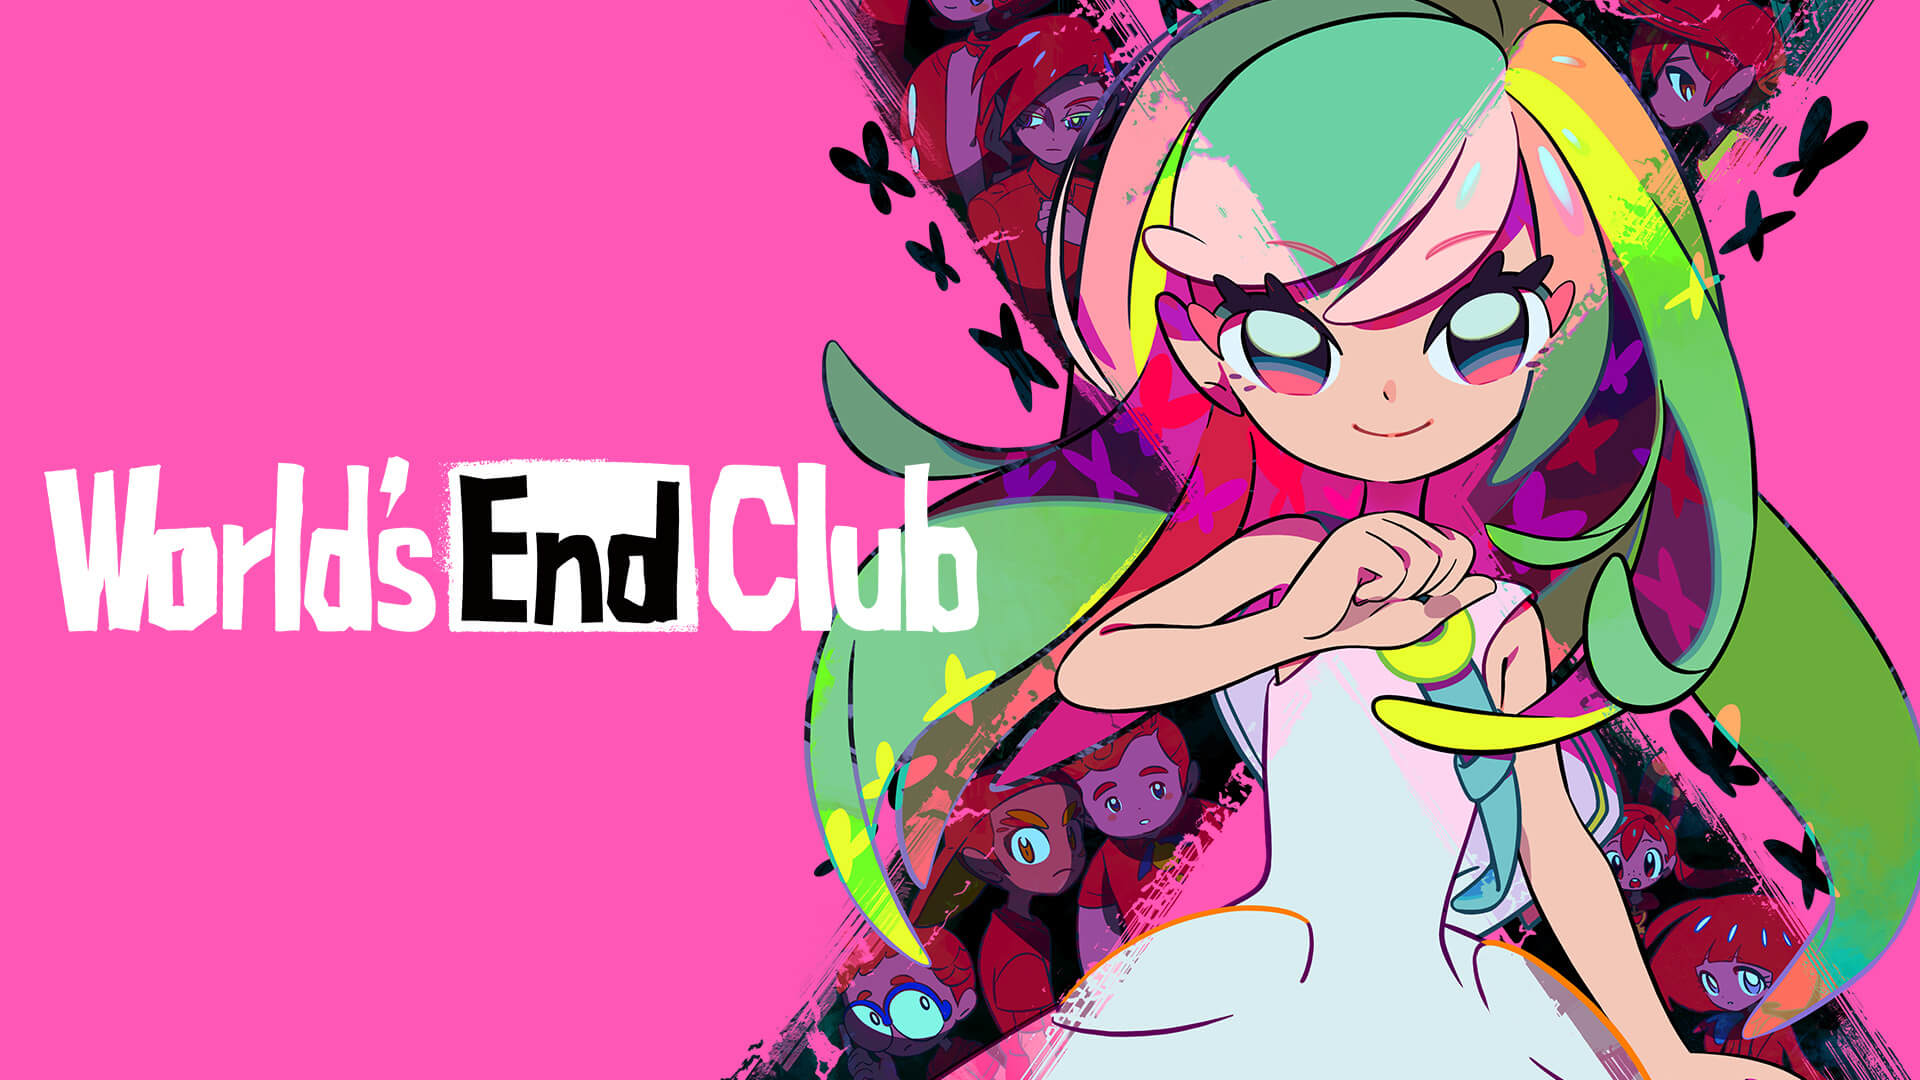 World's End Club Free PC Download